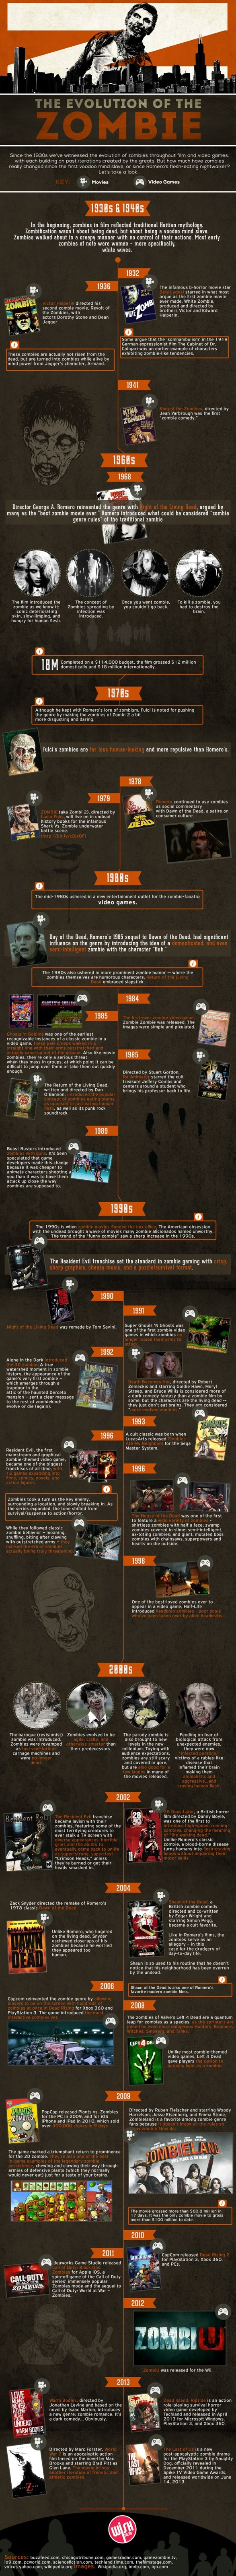 The Evolution of the Zombie [Infographic]